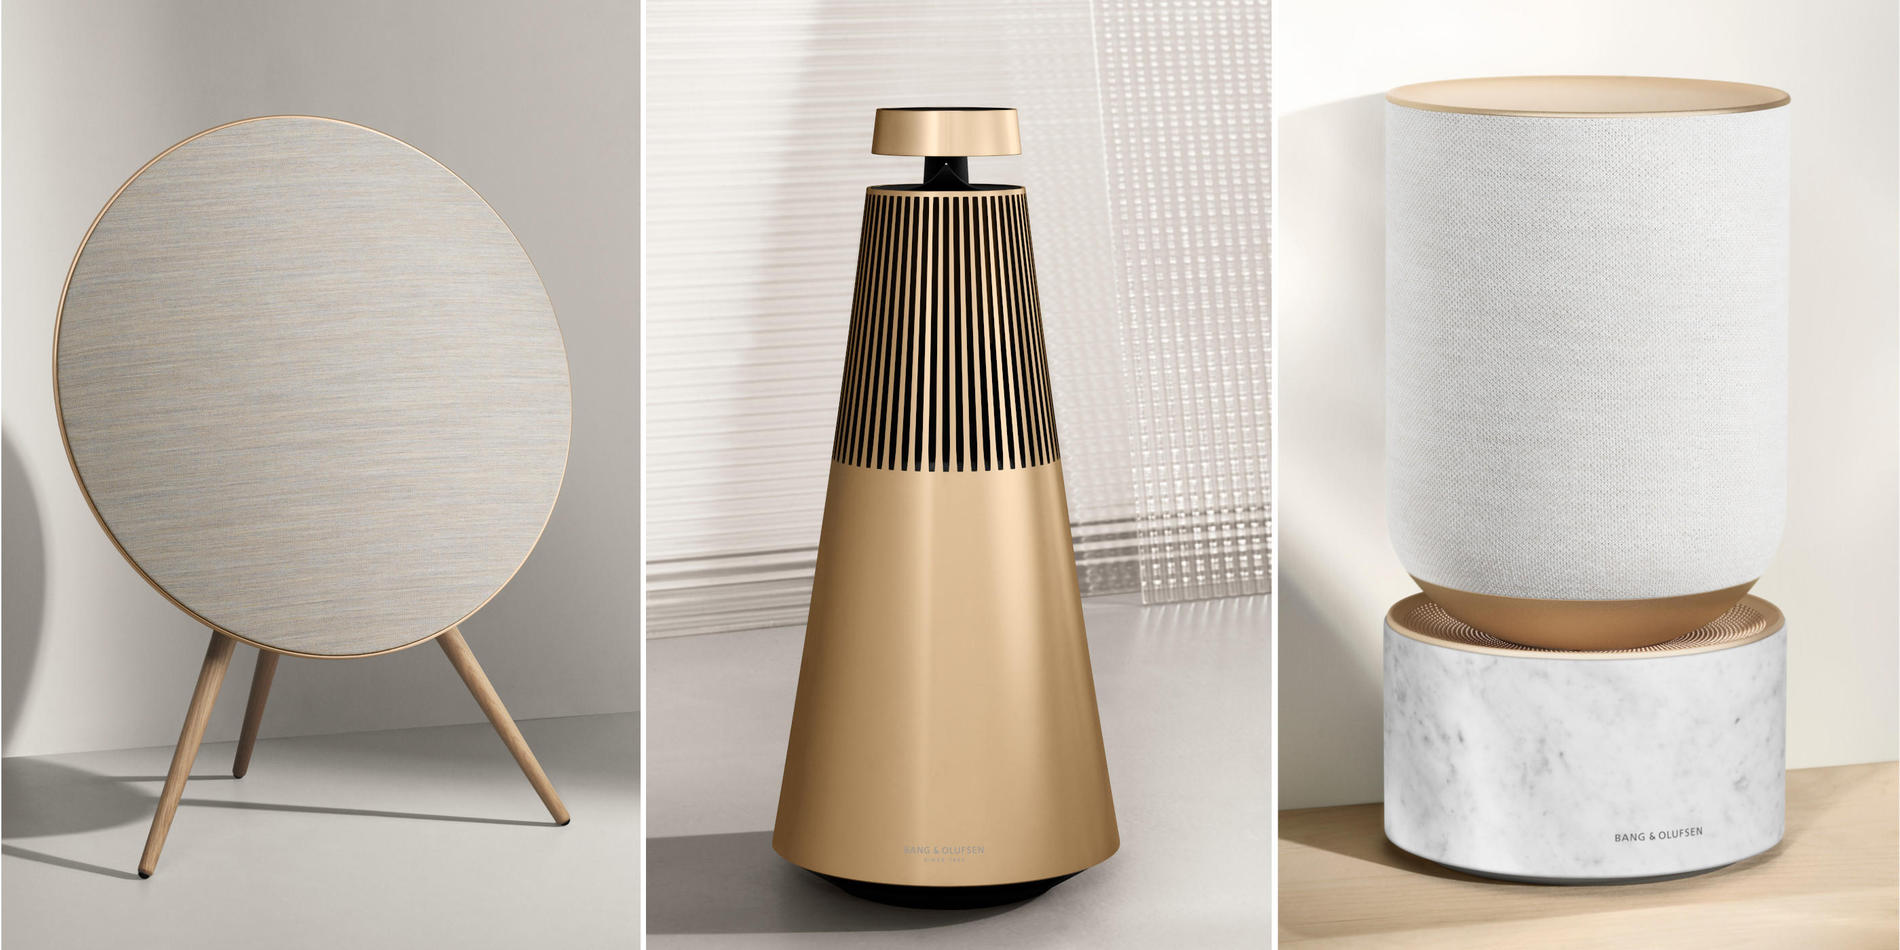 Golden collection Bang & Olufsen